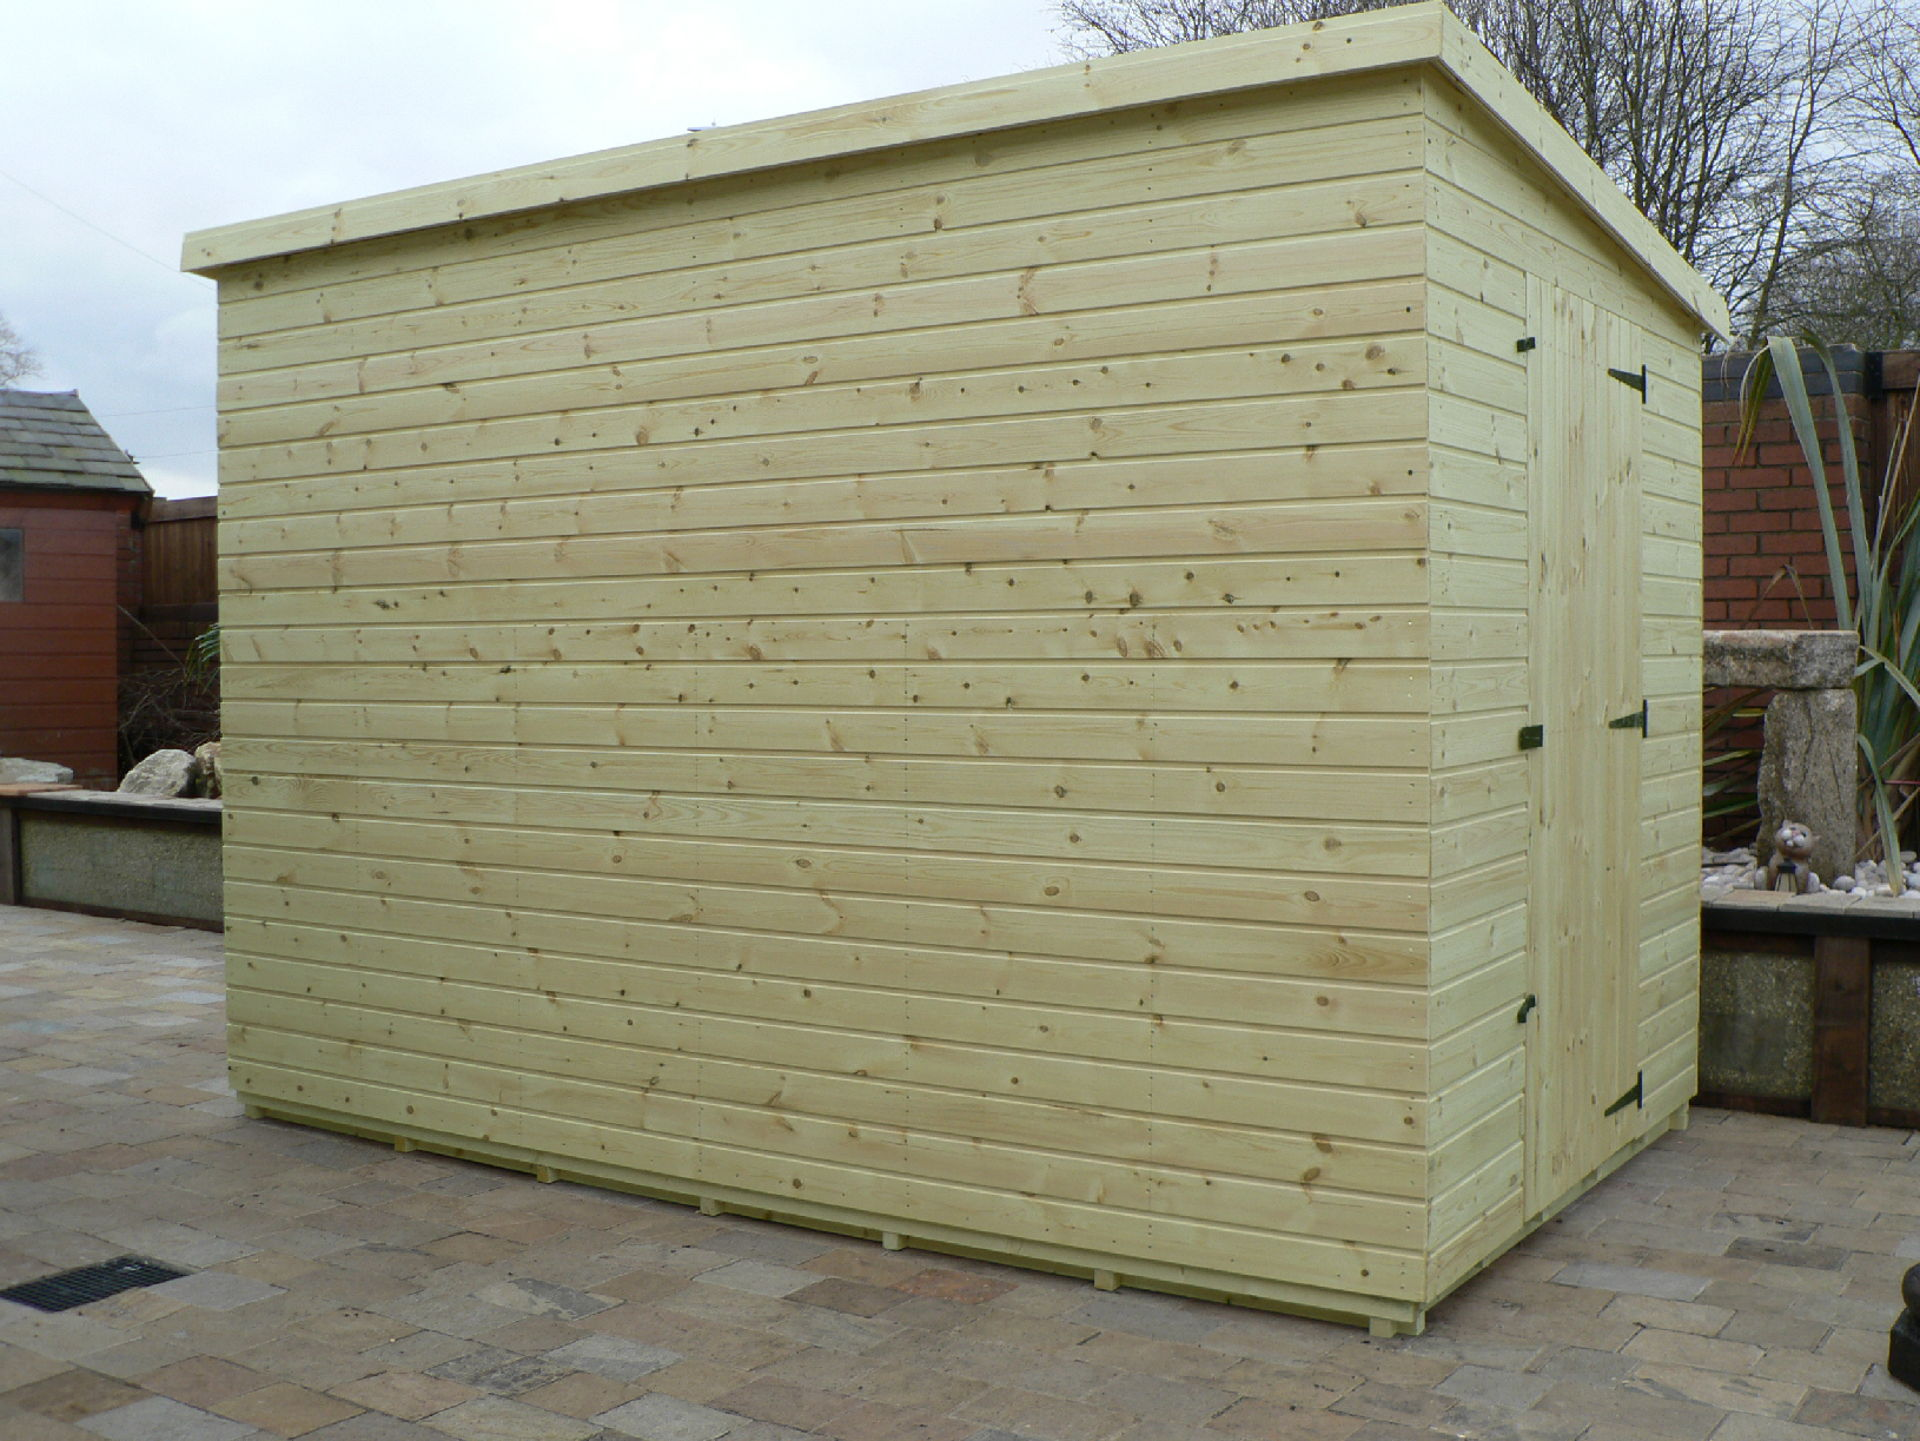 Pressure Treated 10' x 6' Pent Shed . Door On The Right Gable End Panel. No Windows